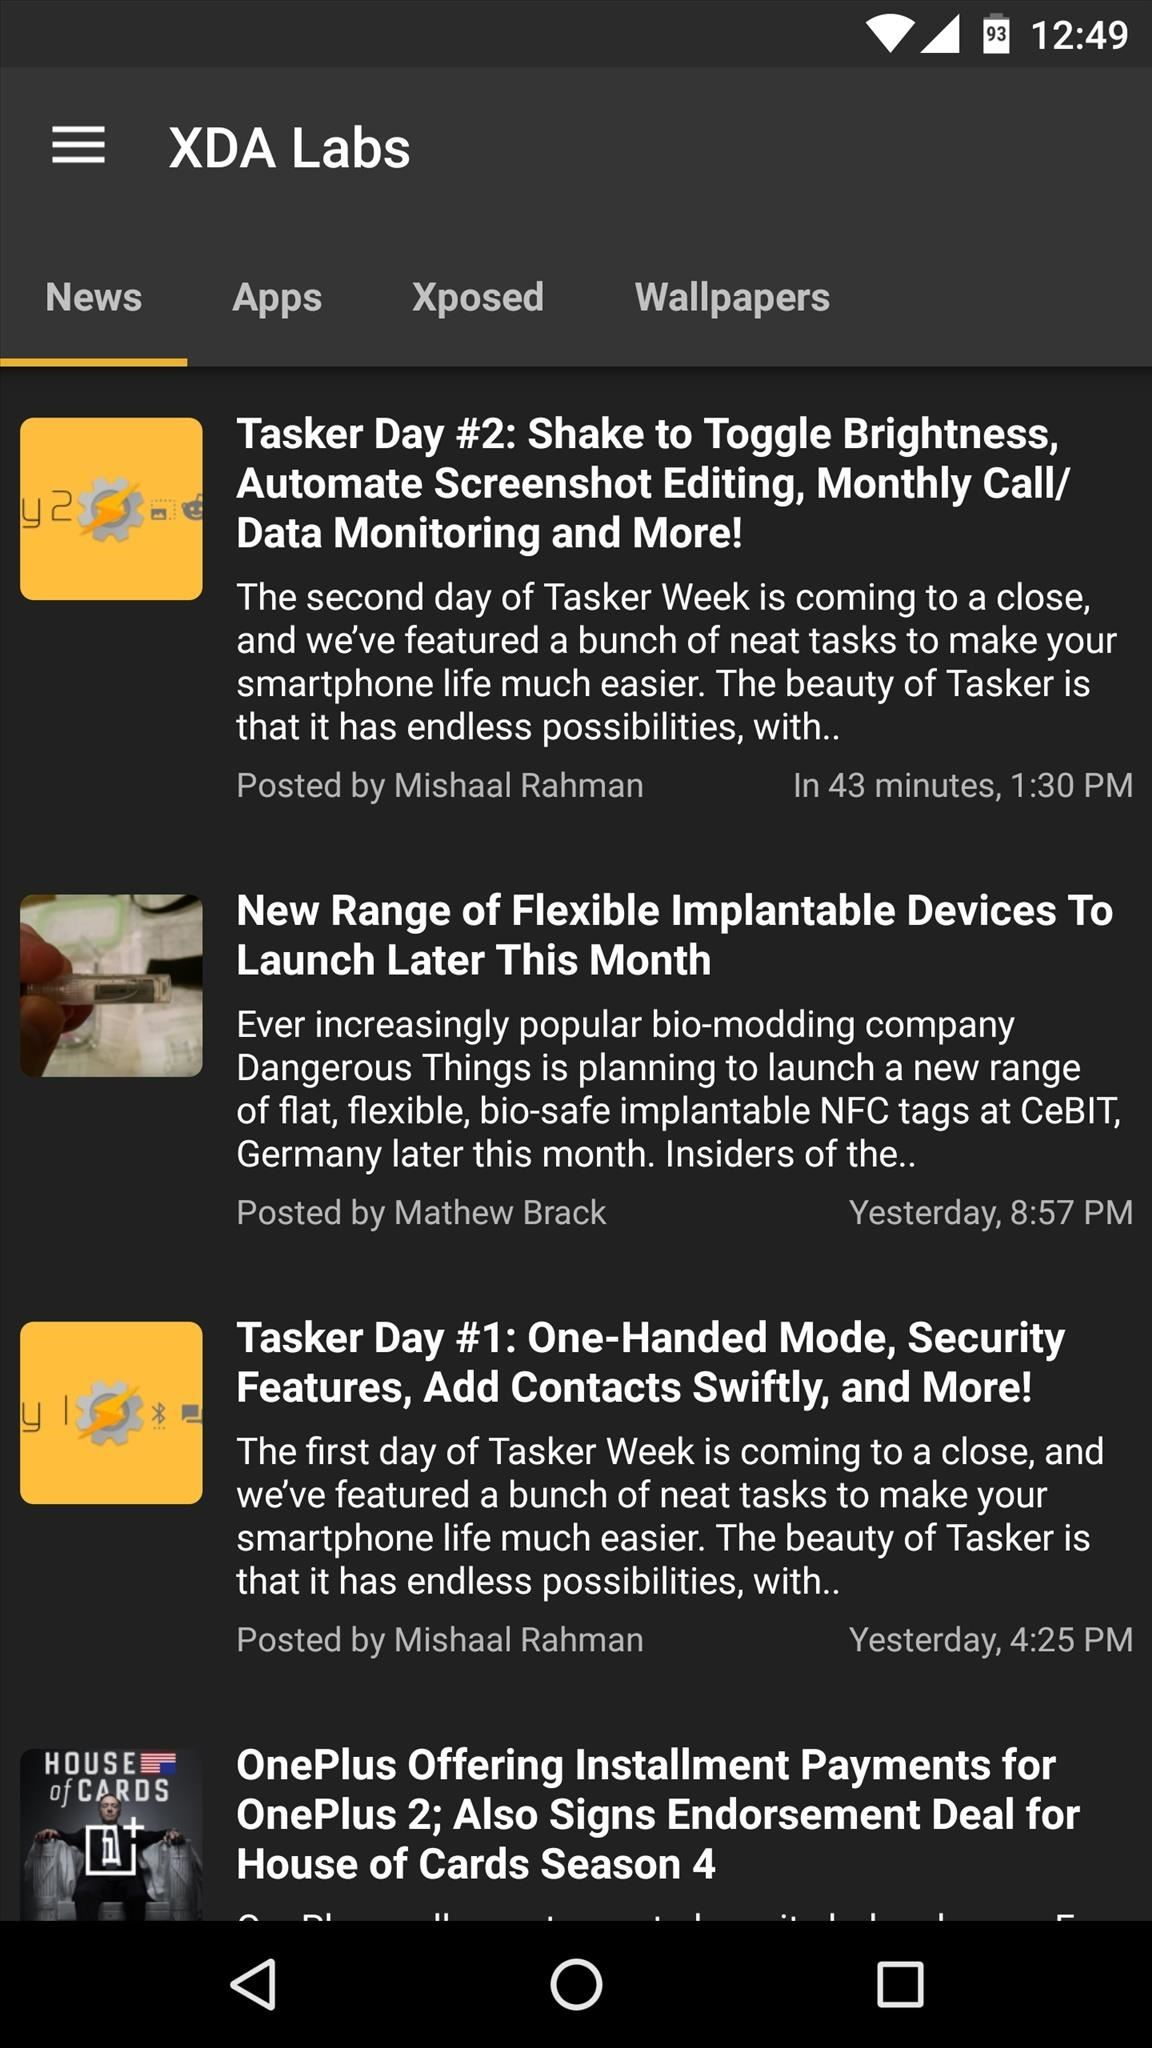 XDA Labs Makes Installing Third-Party Apps & Hacks Easy « Android